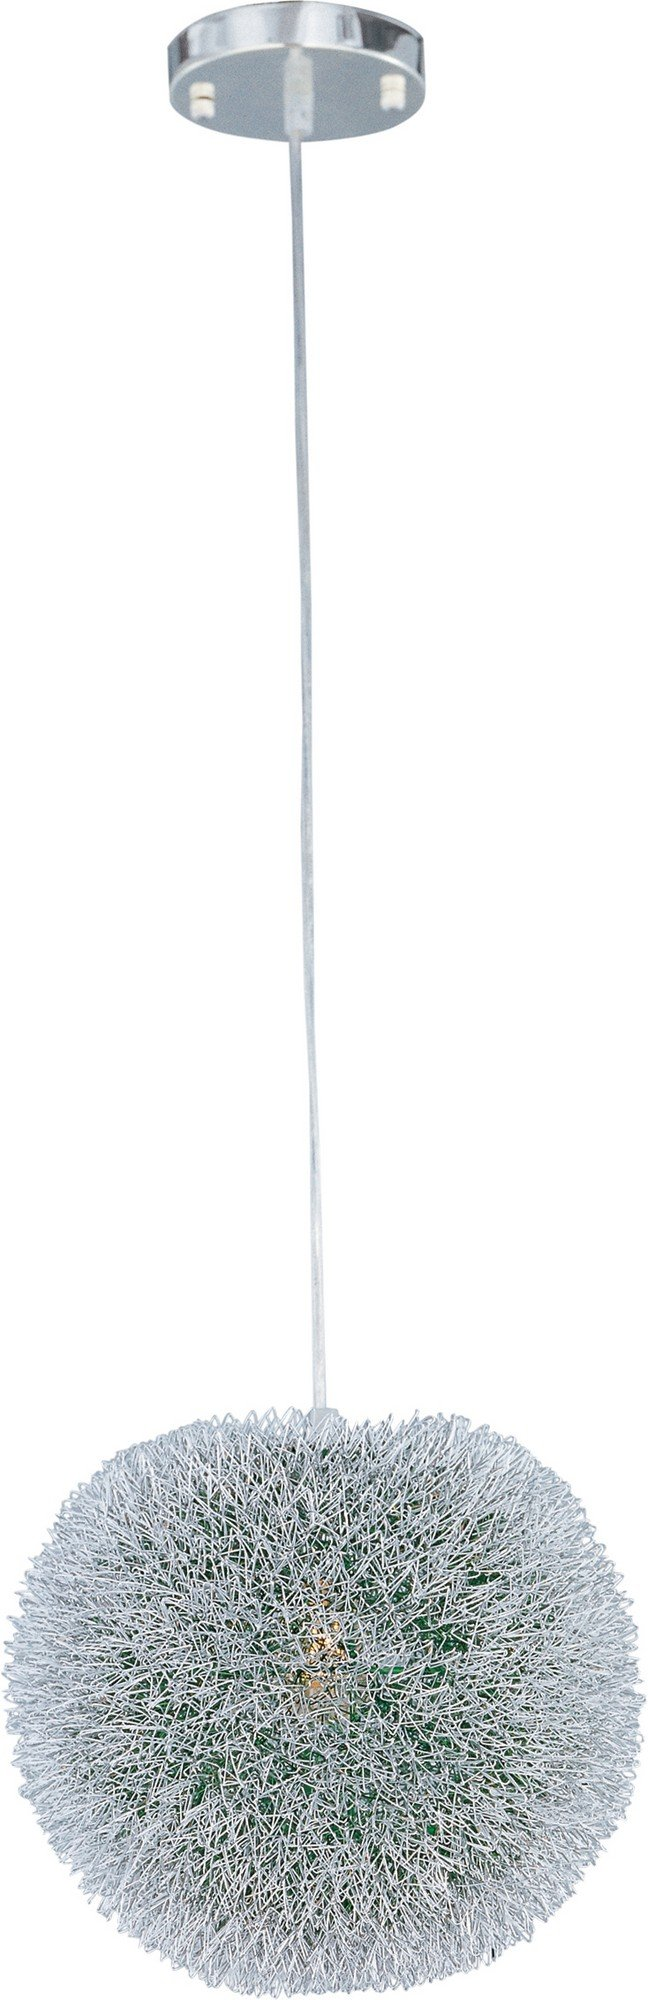 ET2 E24373-94AL Clipp 1-Light Single Pendant, Brushed Aluminum Finish, Glass, MB Incandescent Bulb, 1.2W Max., Dry Safety Rated, 2900K Color Temp., Low-Voltage Electronic Dimmer, Shade Material, 750 Rated Lumens